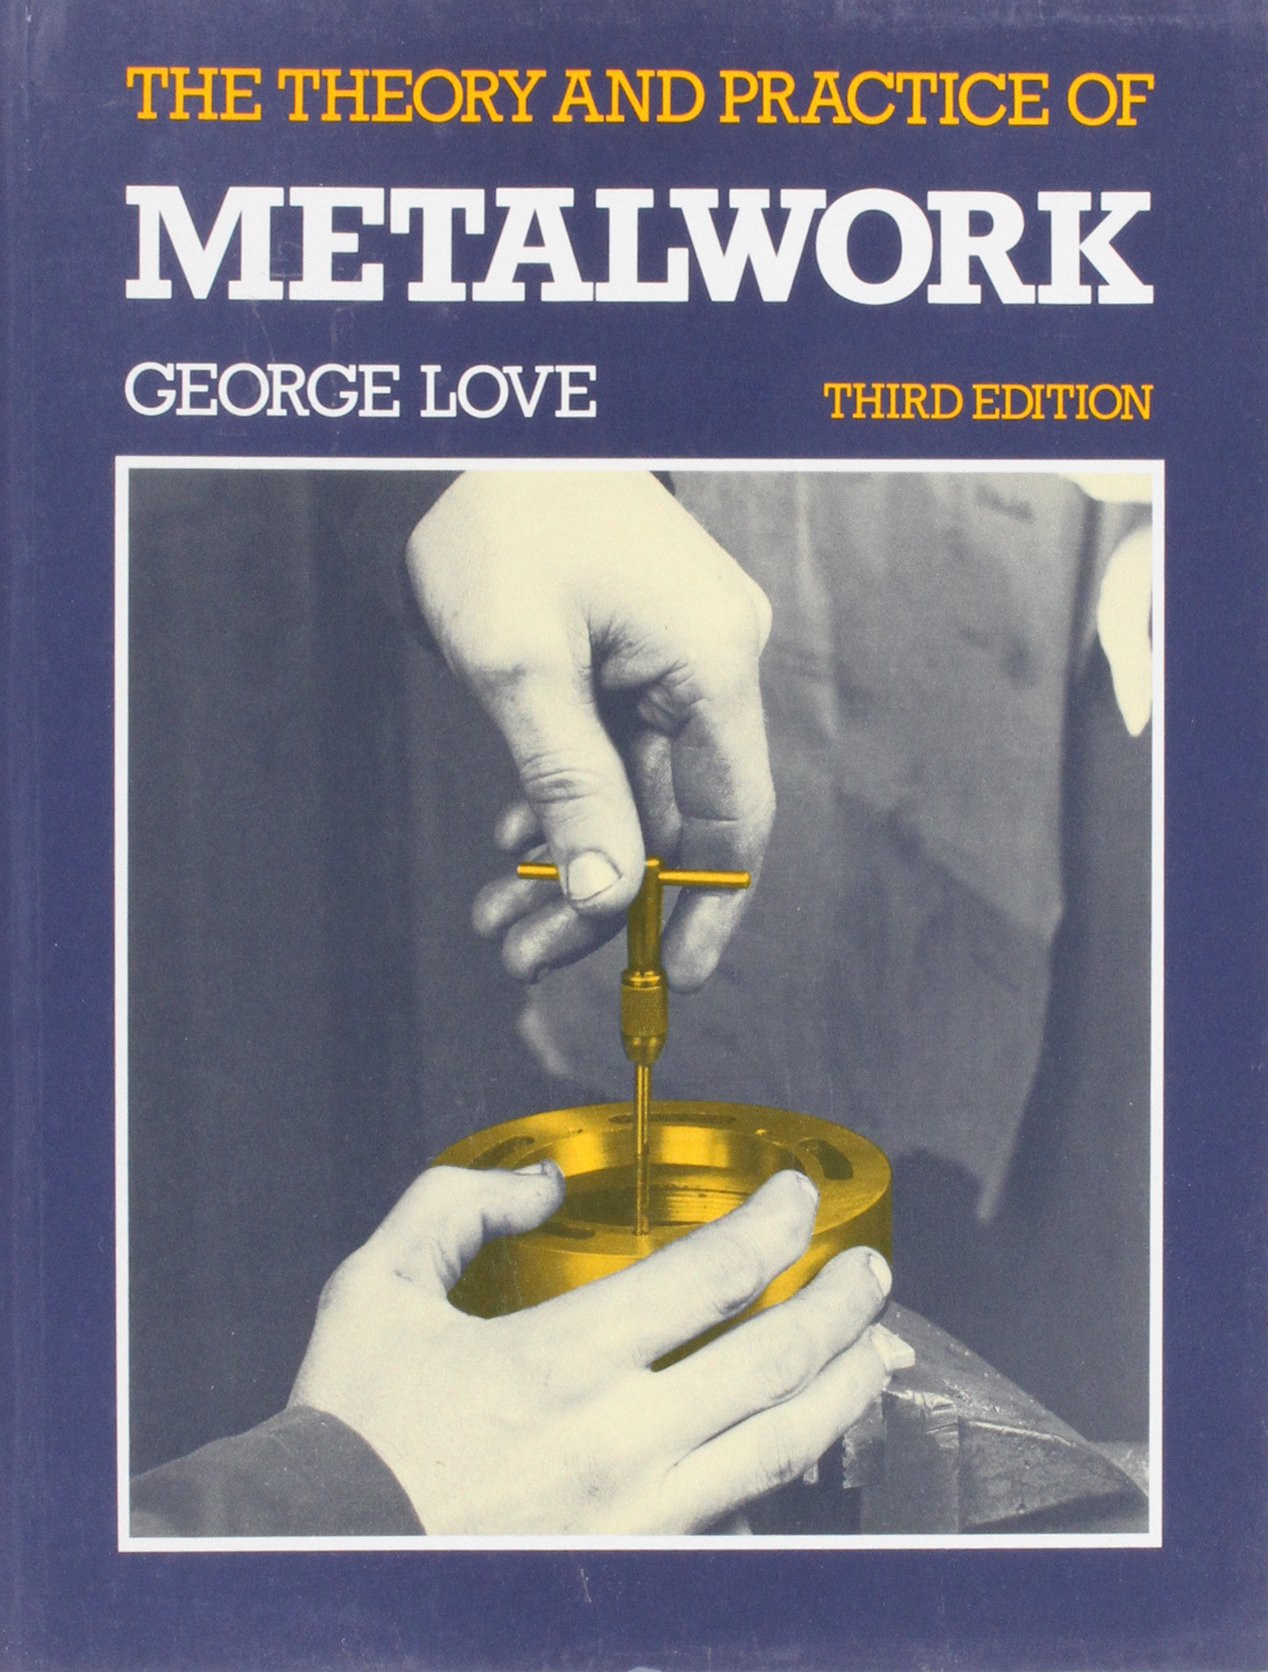 The theory and practice of metalwork 3e george love 9780582331372 the theory and practice of metalwork 3e george love 9780582331372 amazon books fandeluxe Choice Image